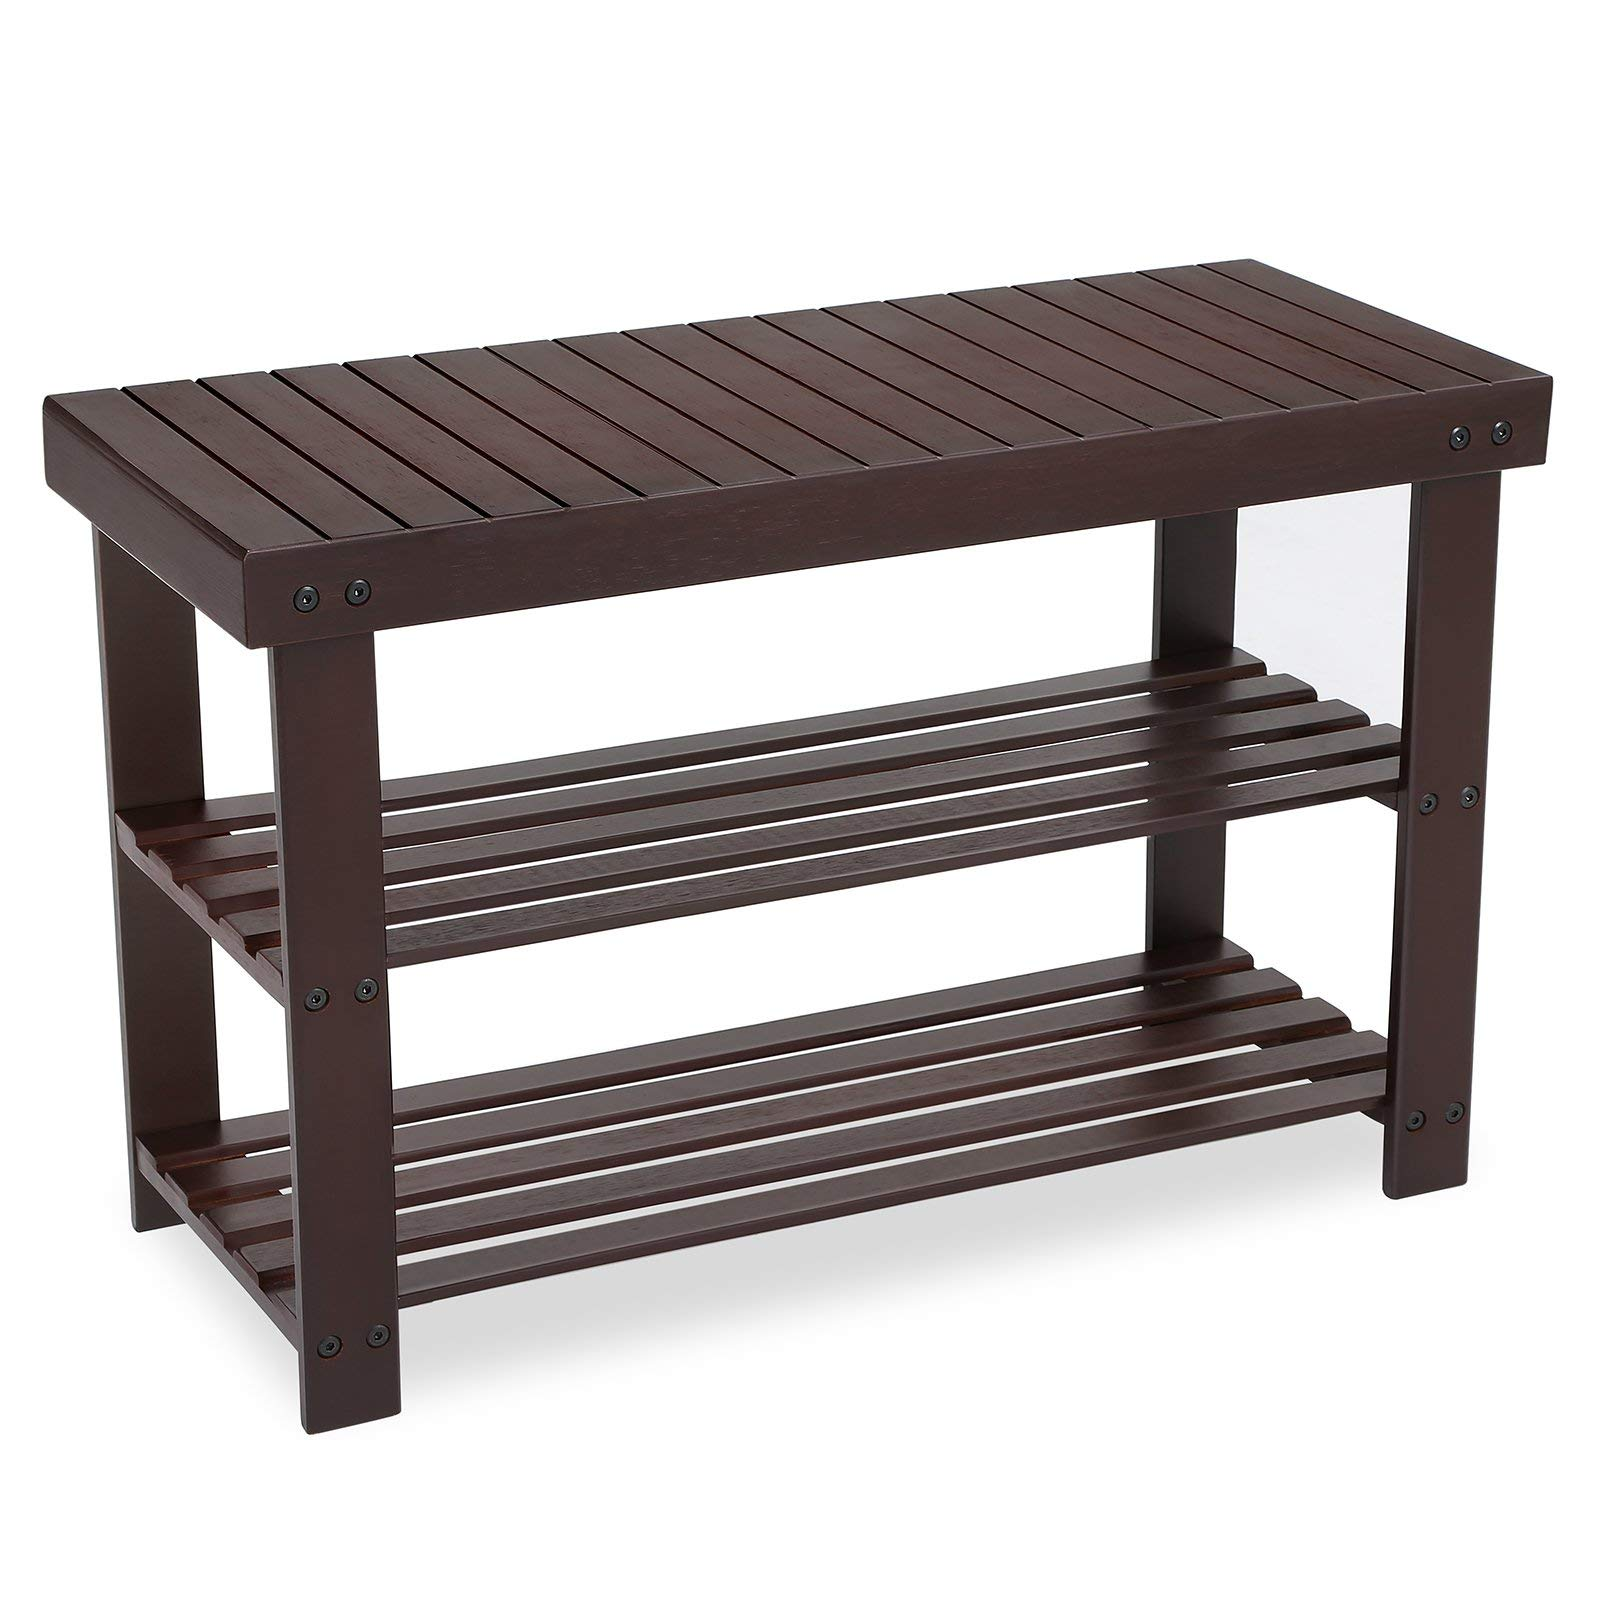 SONGMICS 3-Tier Bamboo Shoe Rack Bench, Shoe Organizer, Storage Shelf, Holds Up to 264 Lb, Ideal for Entryway Hallway Bathroom Living Room and Corridor Brown ULBS04Z by SONGMICS